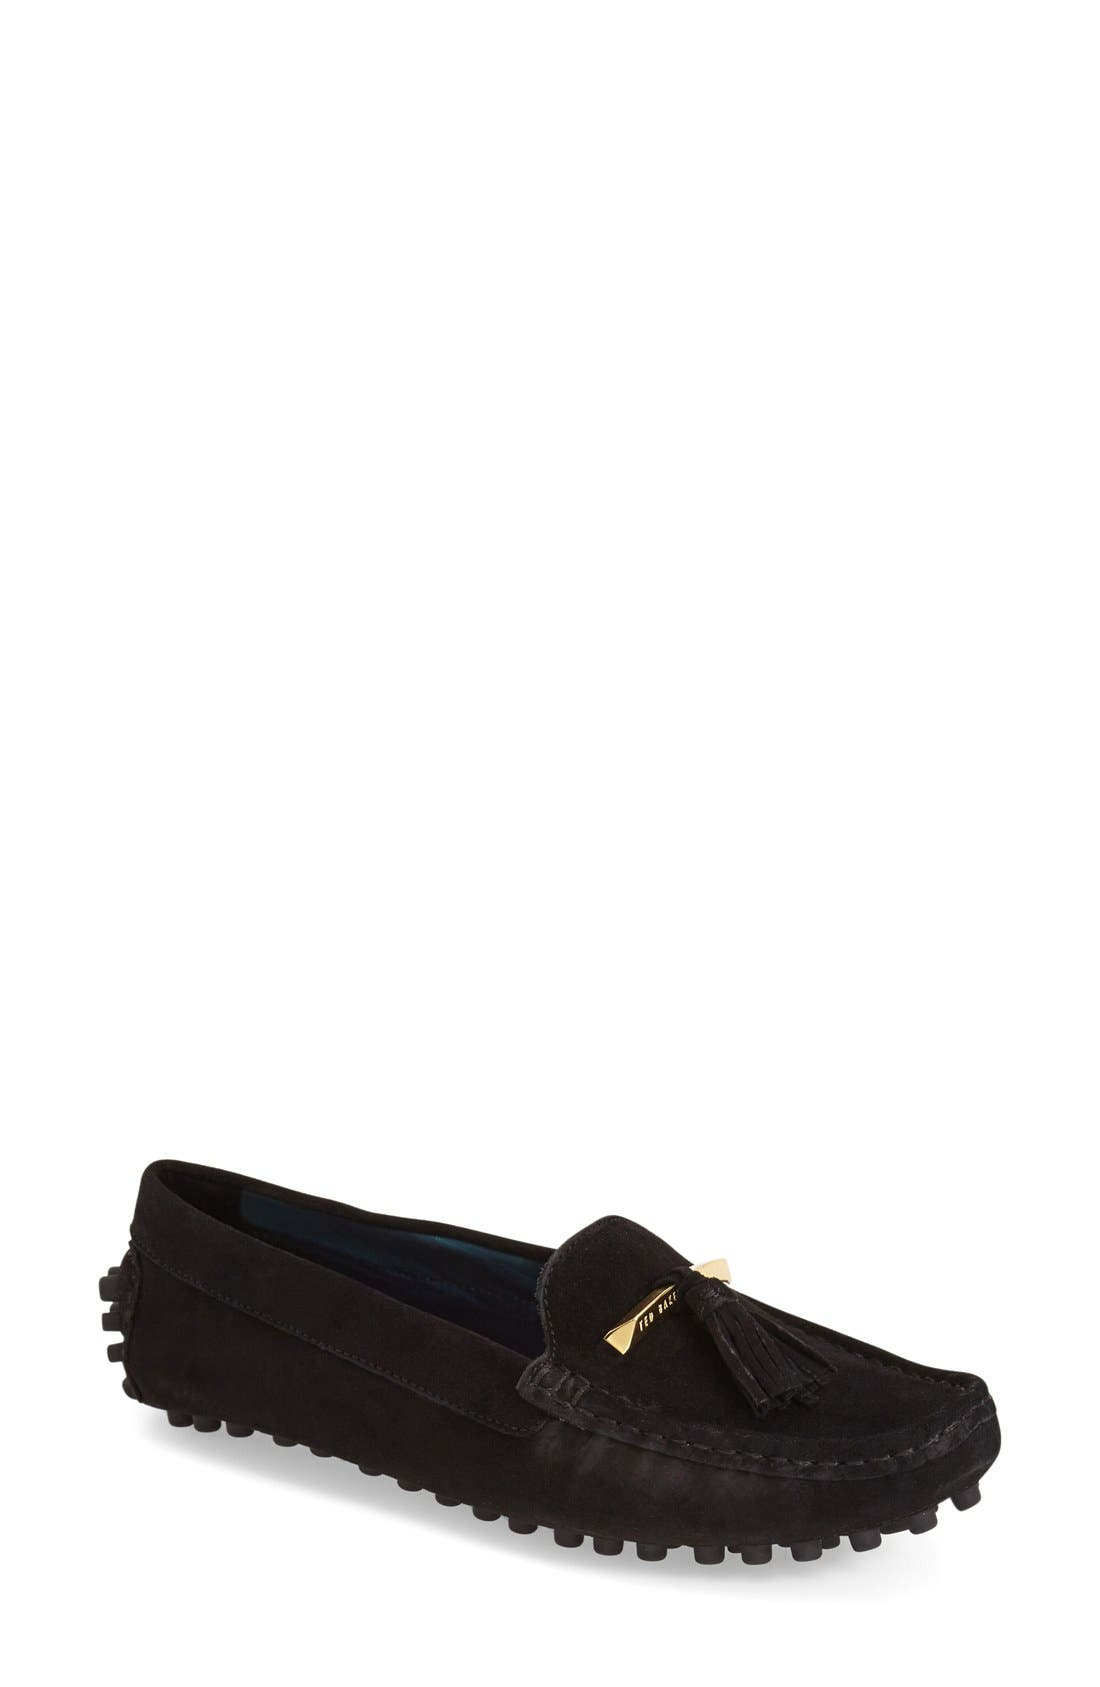 TED BAKER LONDON 'Harlii' Driving Loafer, Main, color, 010